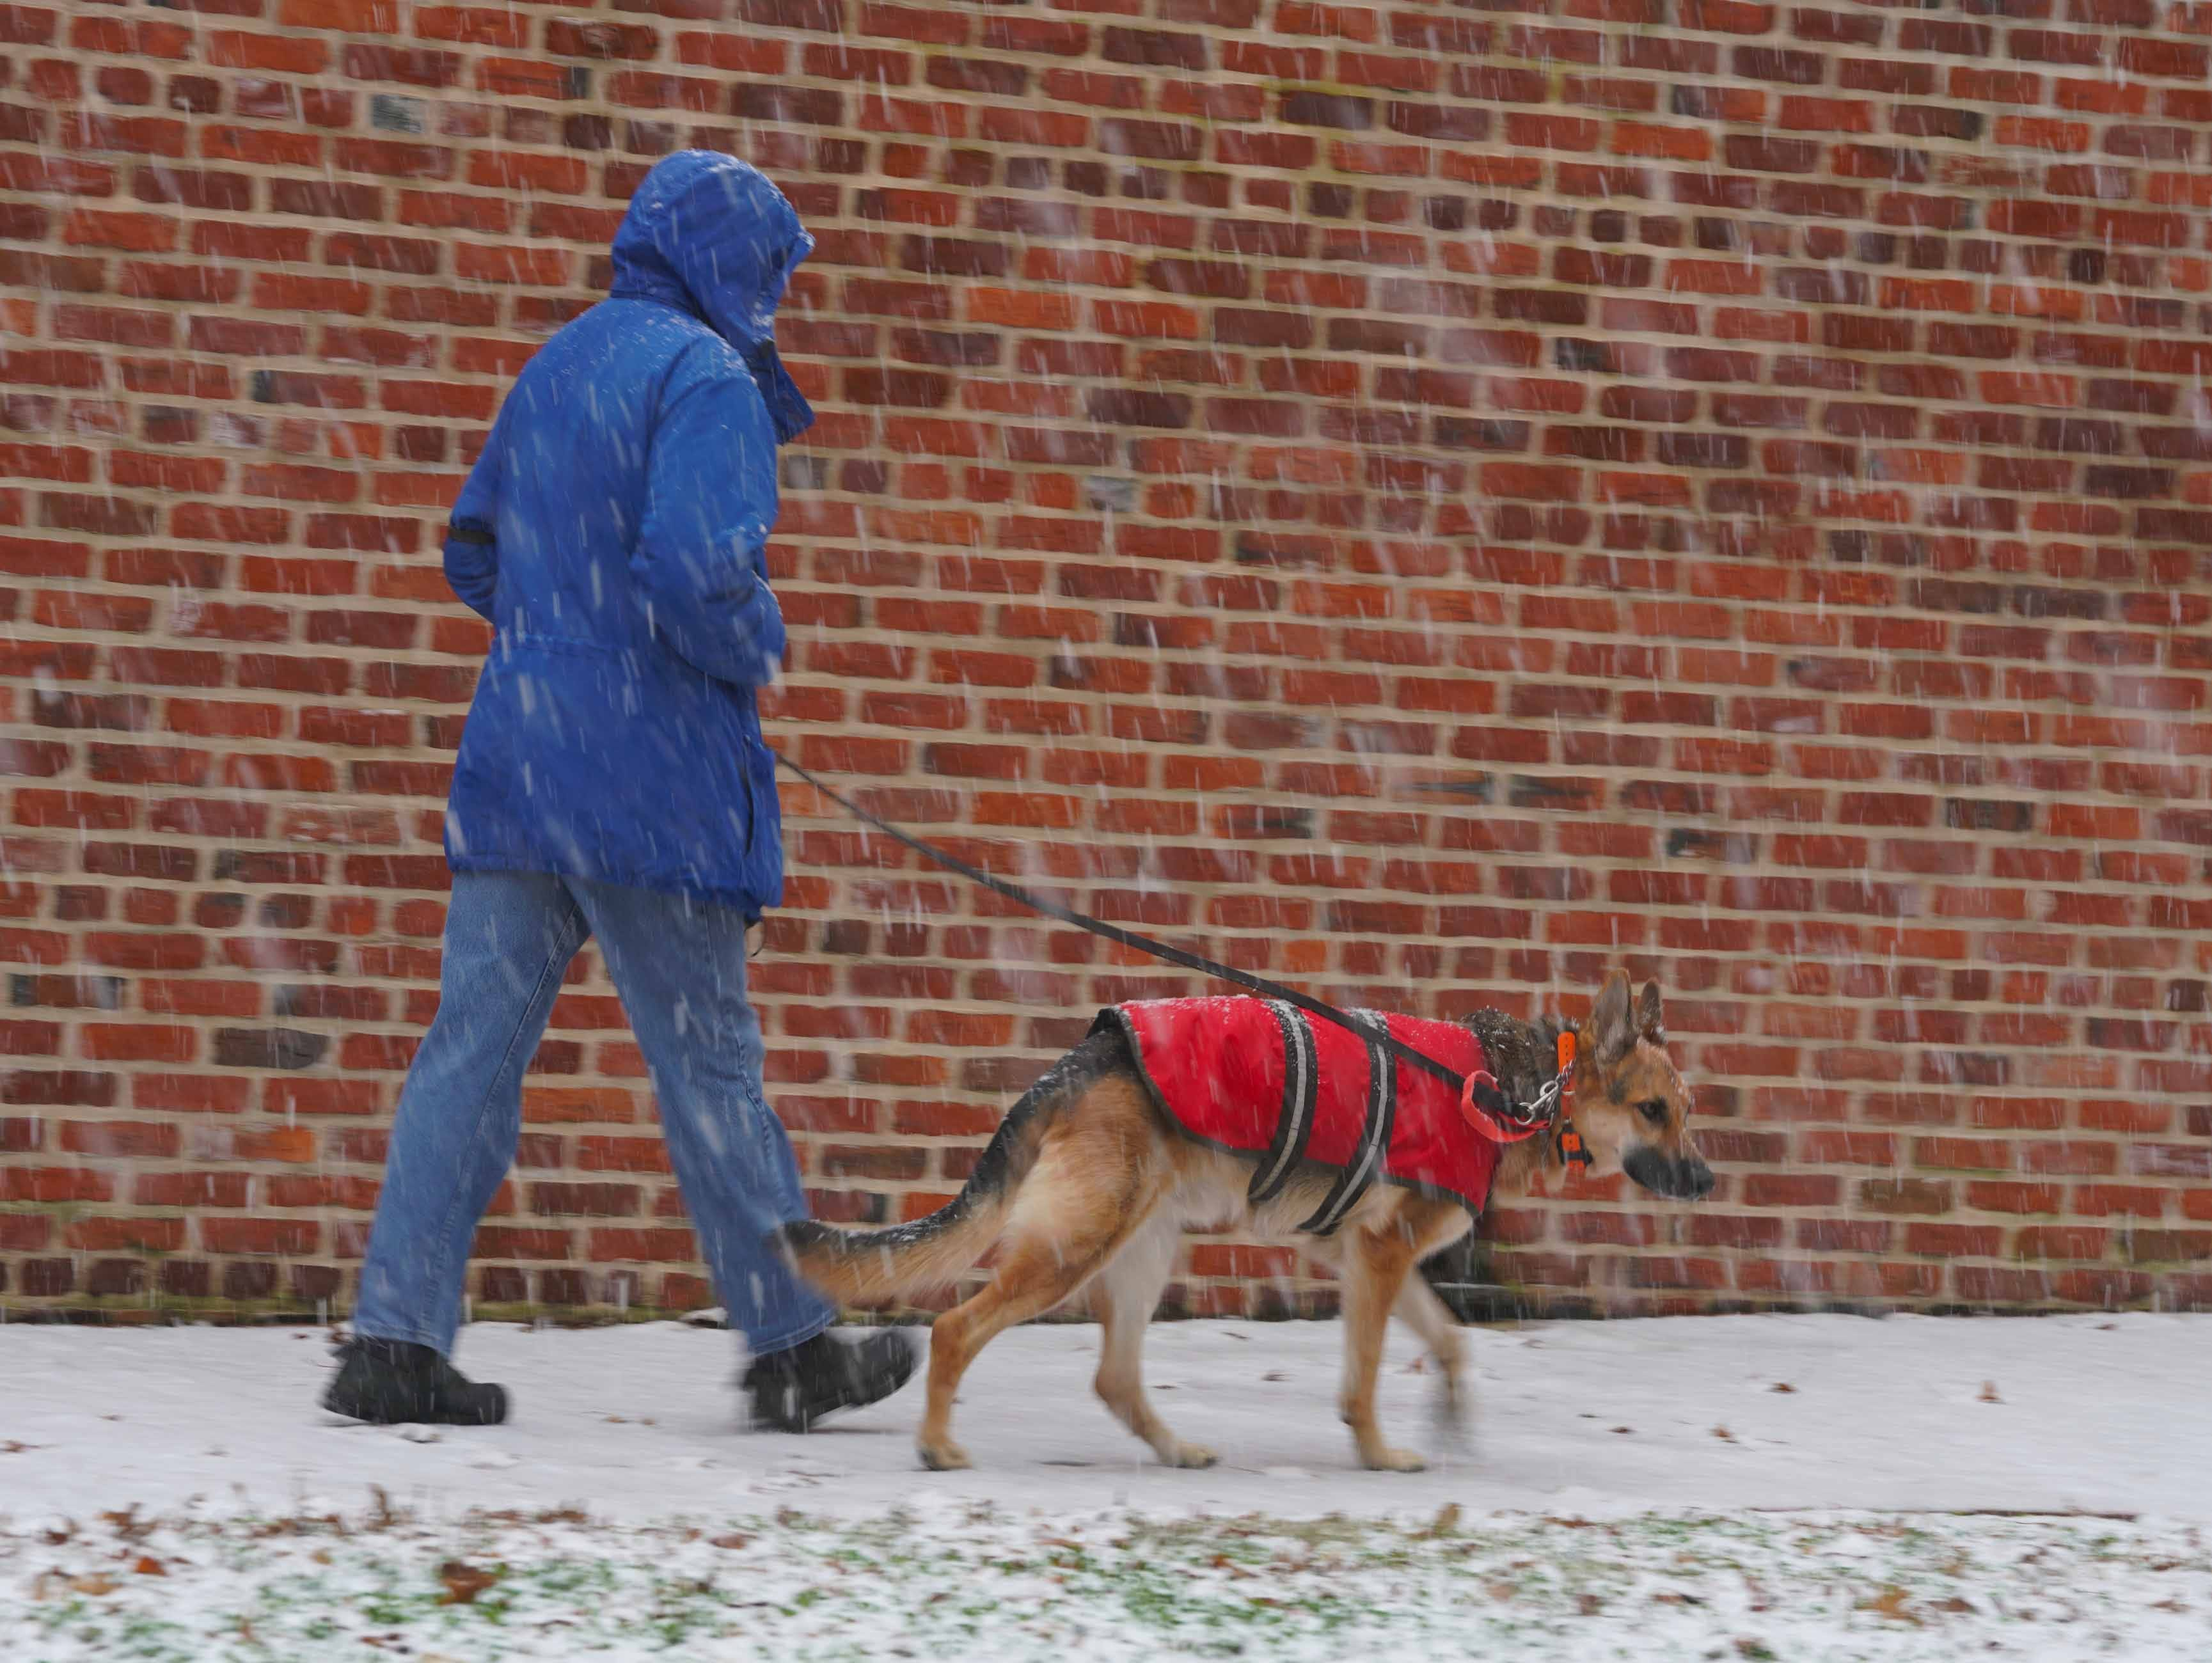 A man walks in his dog in the snow fall in Old New Castle on Thursday morning along E. Third St.